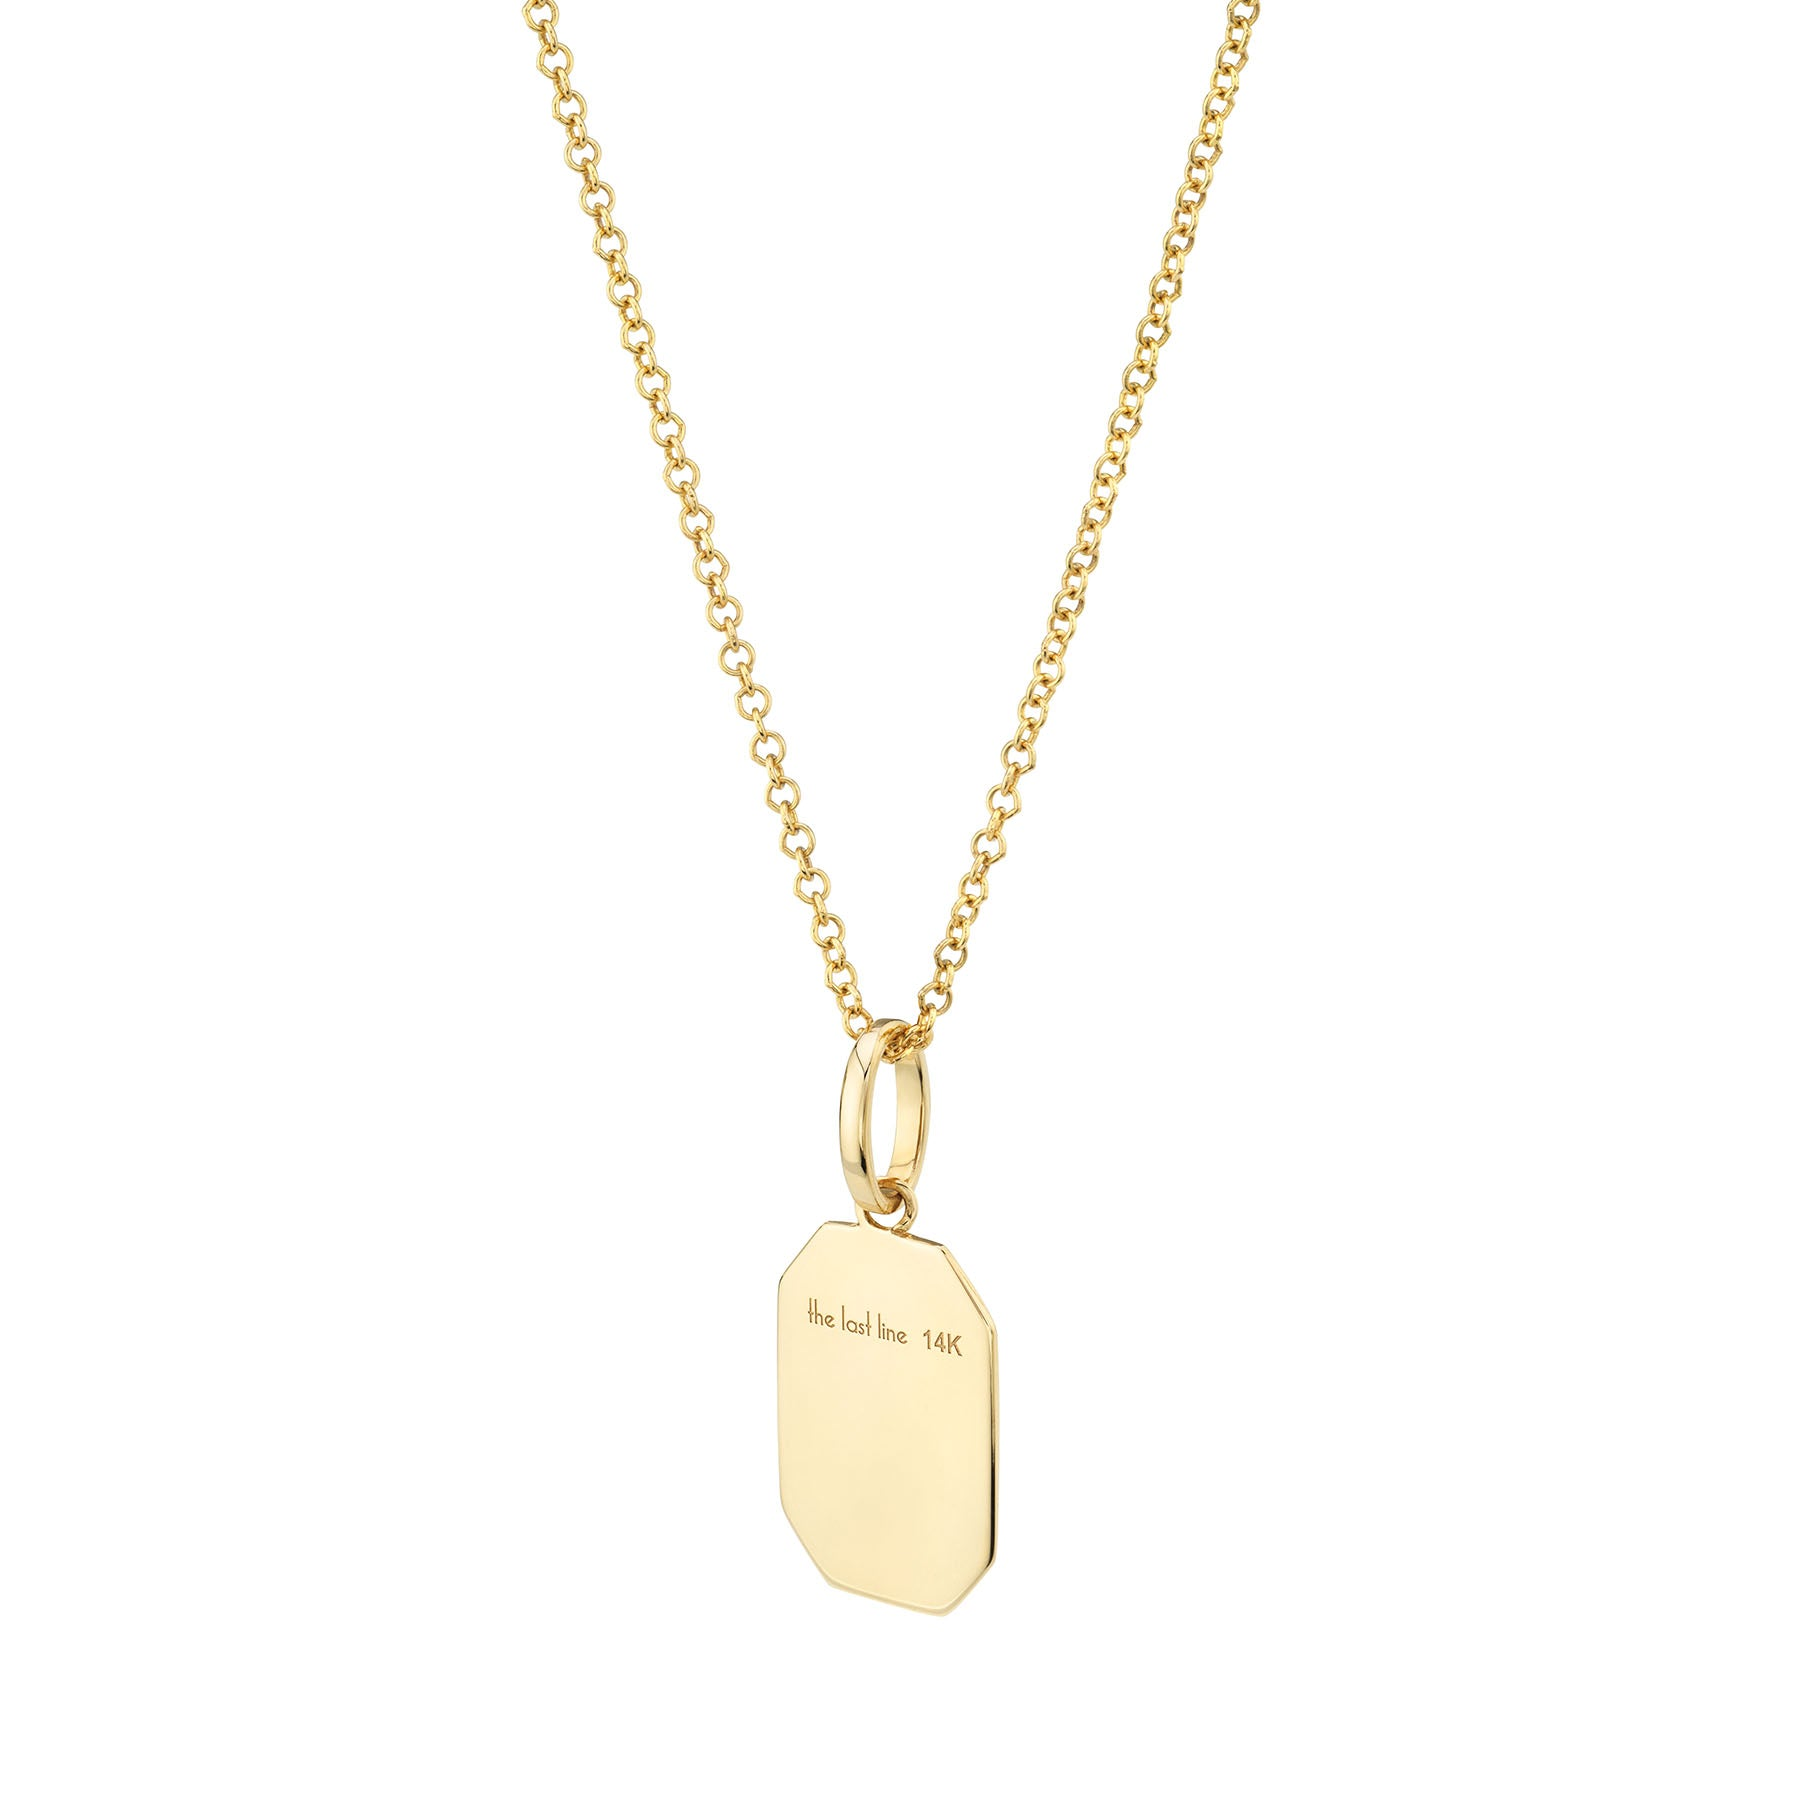 GOLD RECTANGLE PENDANT